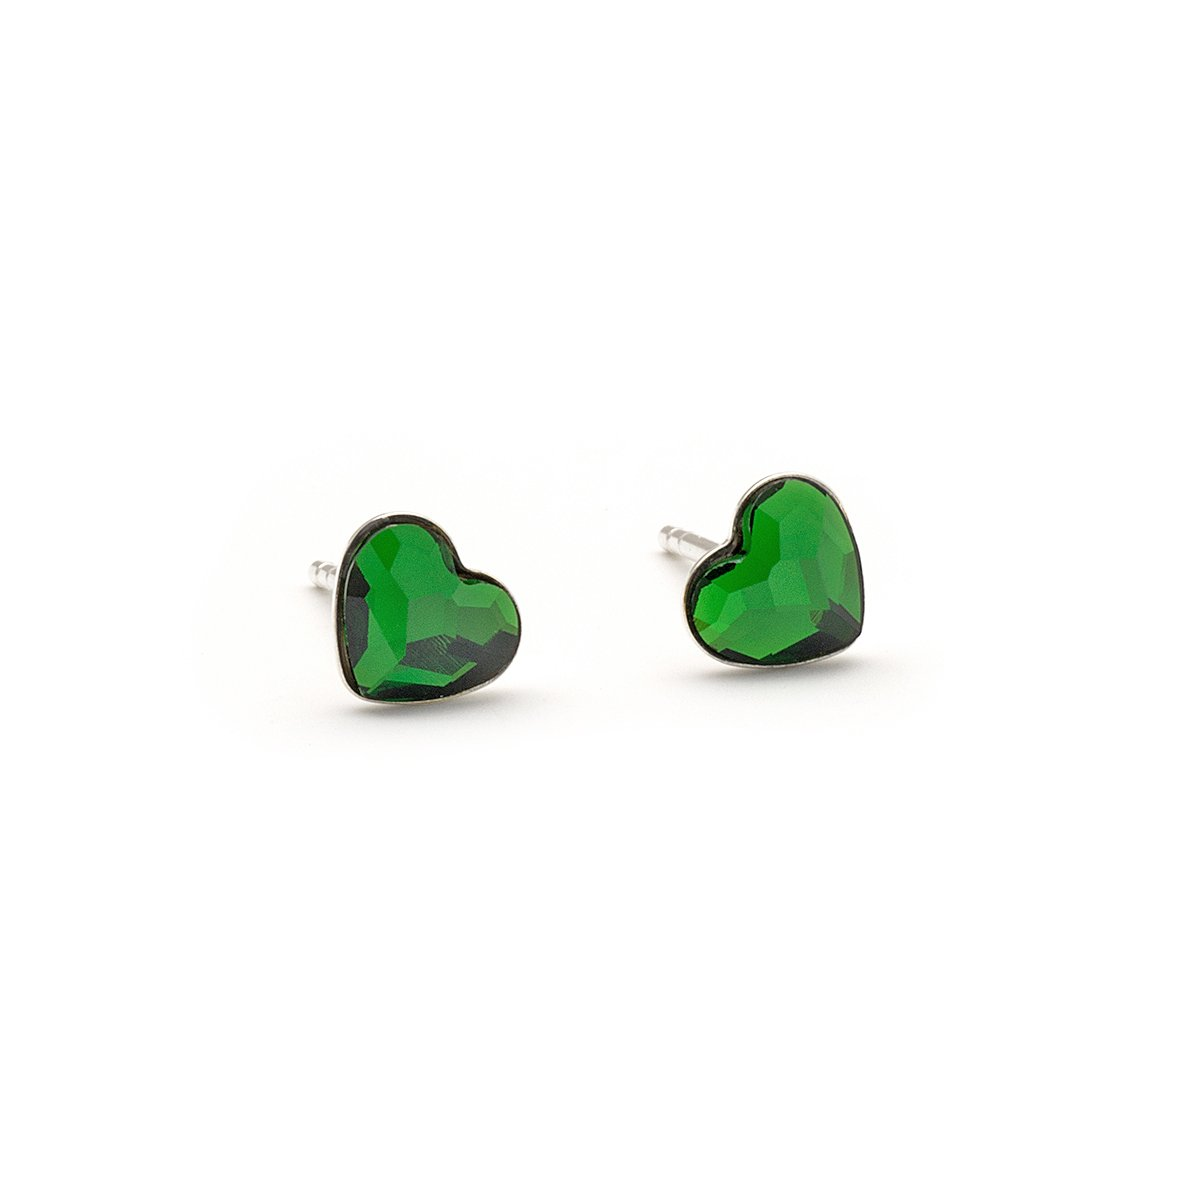 Tiny green Swarovski Heart dainty stud crystal 6mm sterling silver 925 post earrings